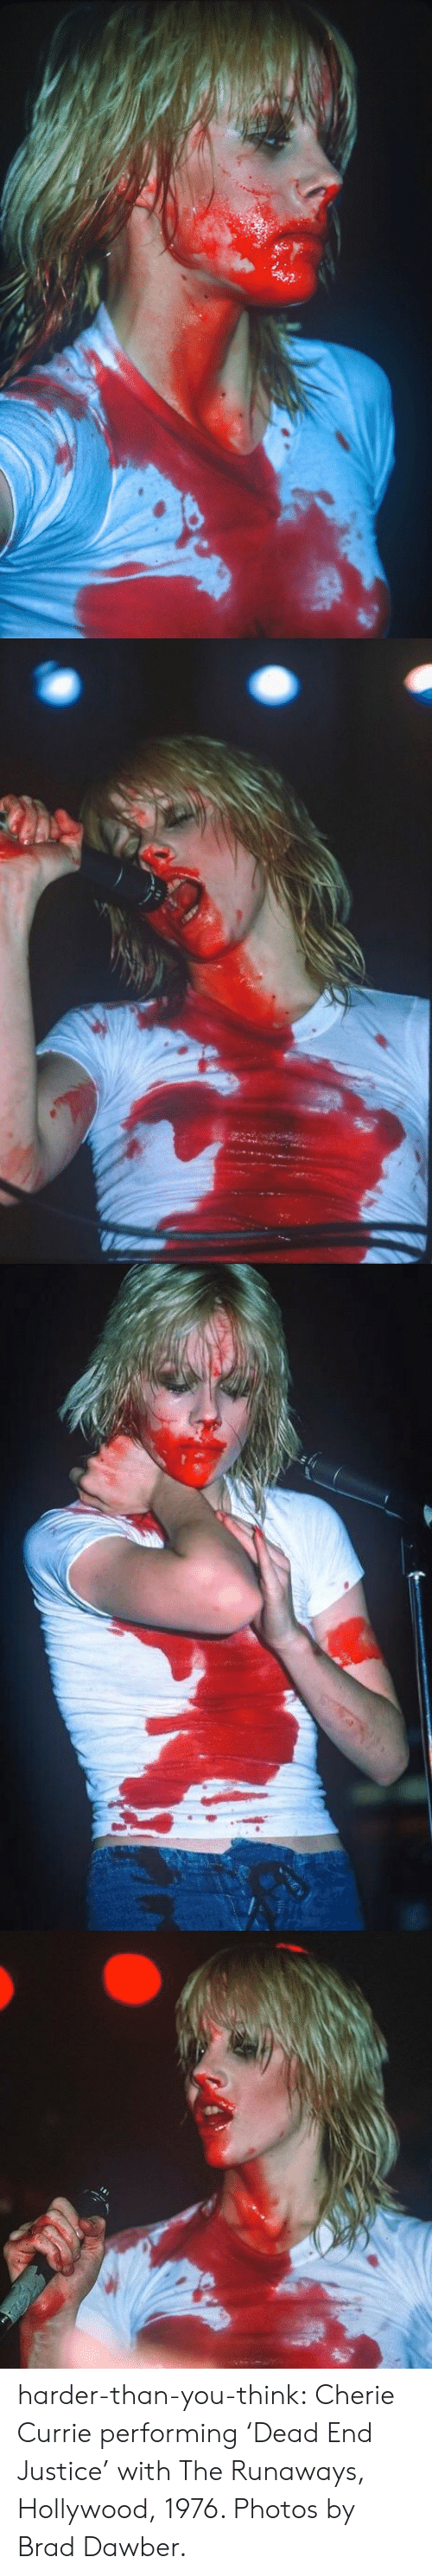 Brad: harder-than-you-think:  Cherie Currie performing 'Dead End Justice' with The Runaways, Hollywood, 1976. Photos by Brad Dawber.